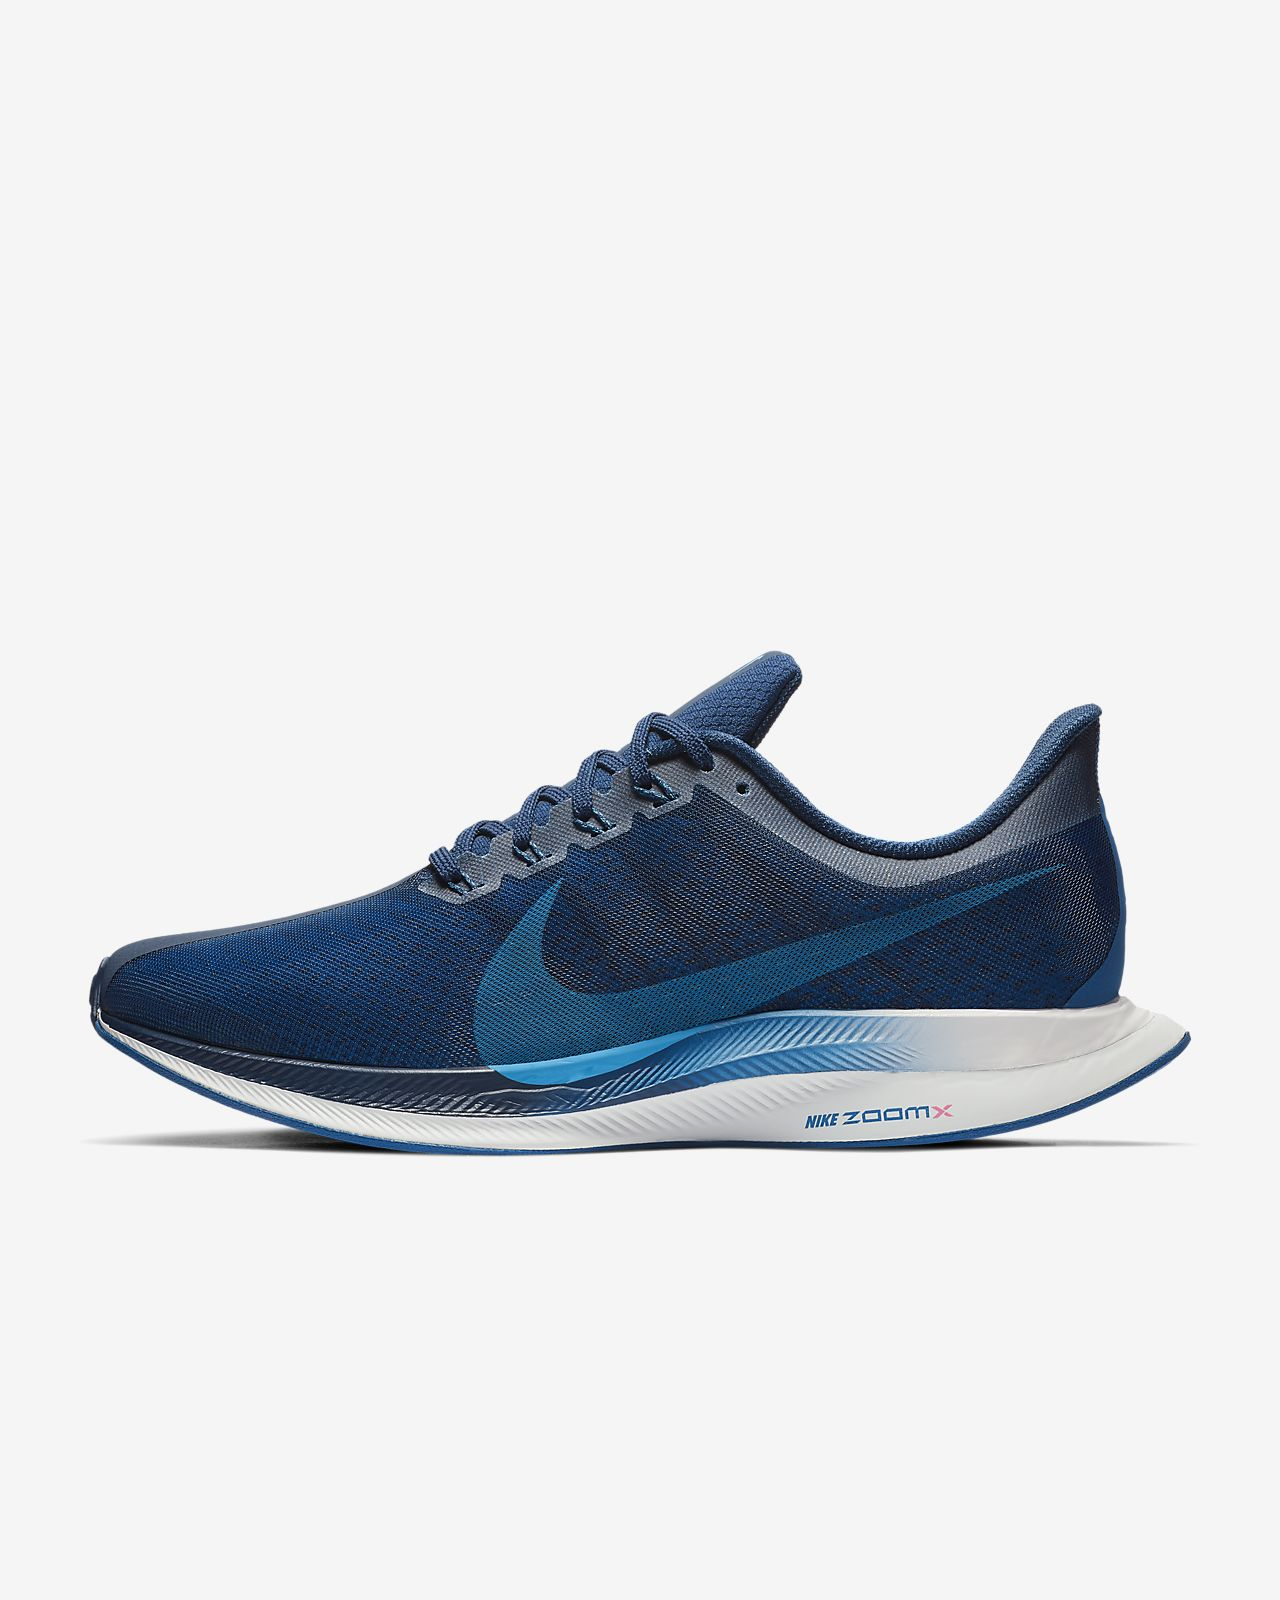 Nike Zoom Pegasus 35 Turbo Men's Running Shoe